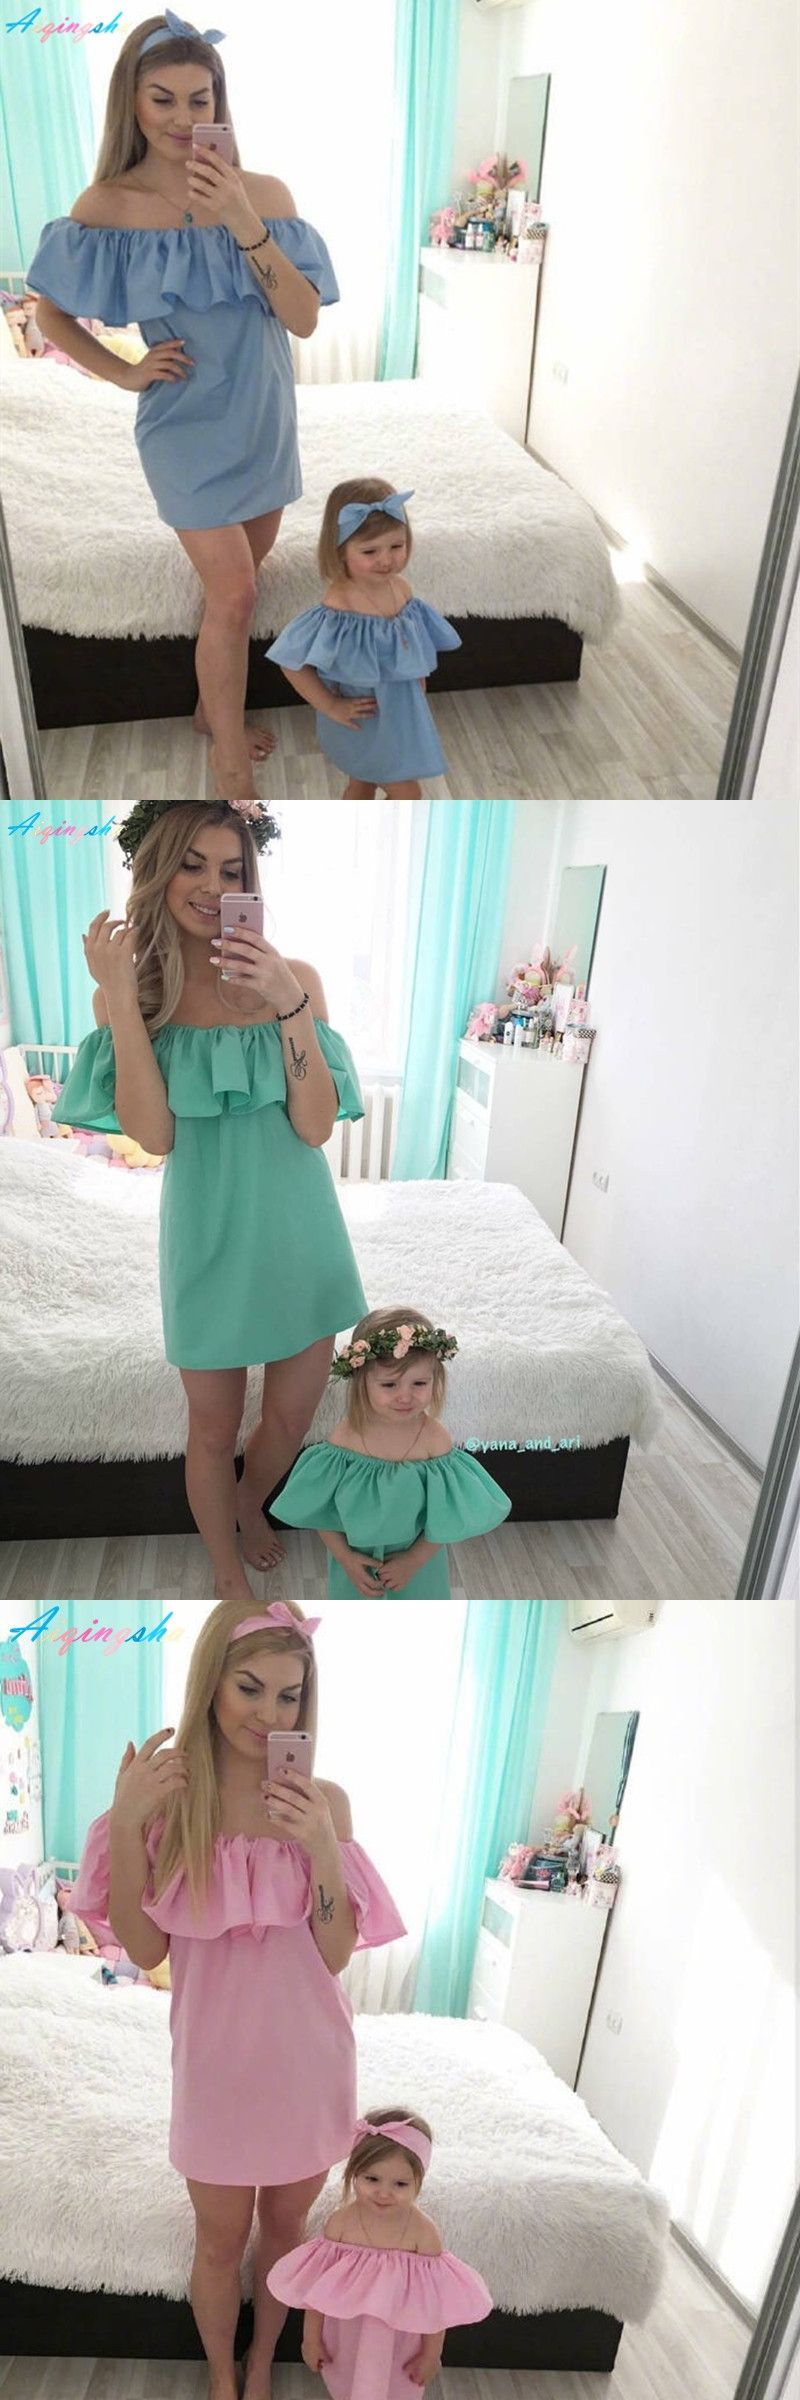 Family Matching Outfits Women S Holiday Beach Dress Mother Daughter Dresses Summer Mommy And Me Clothes